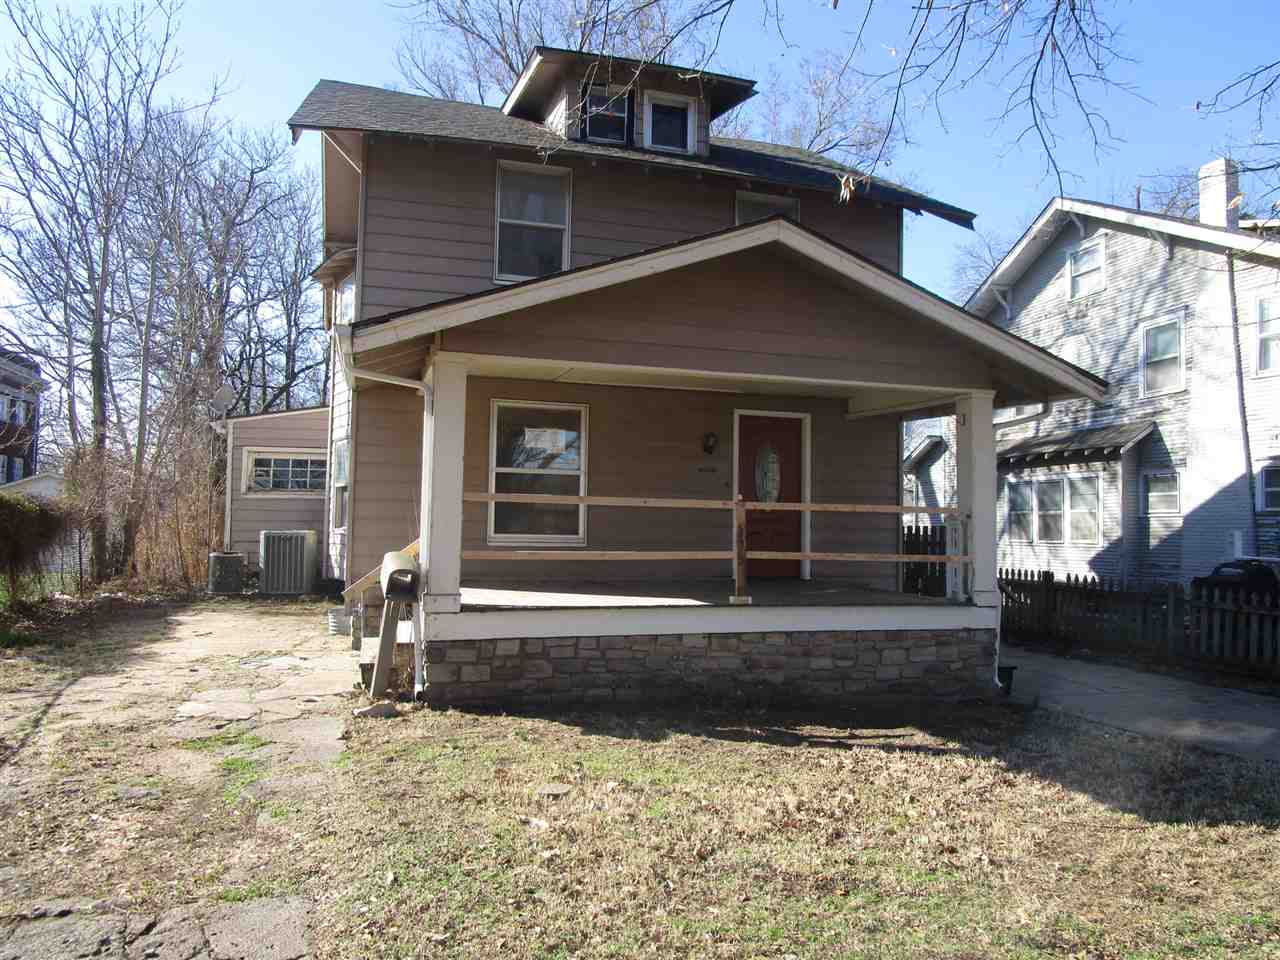 **FHA $100 Down Program Available For Eligible Buyers** Awesome two story located in Wichita featuri